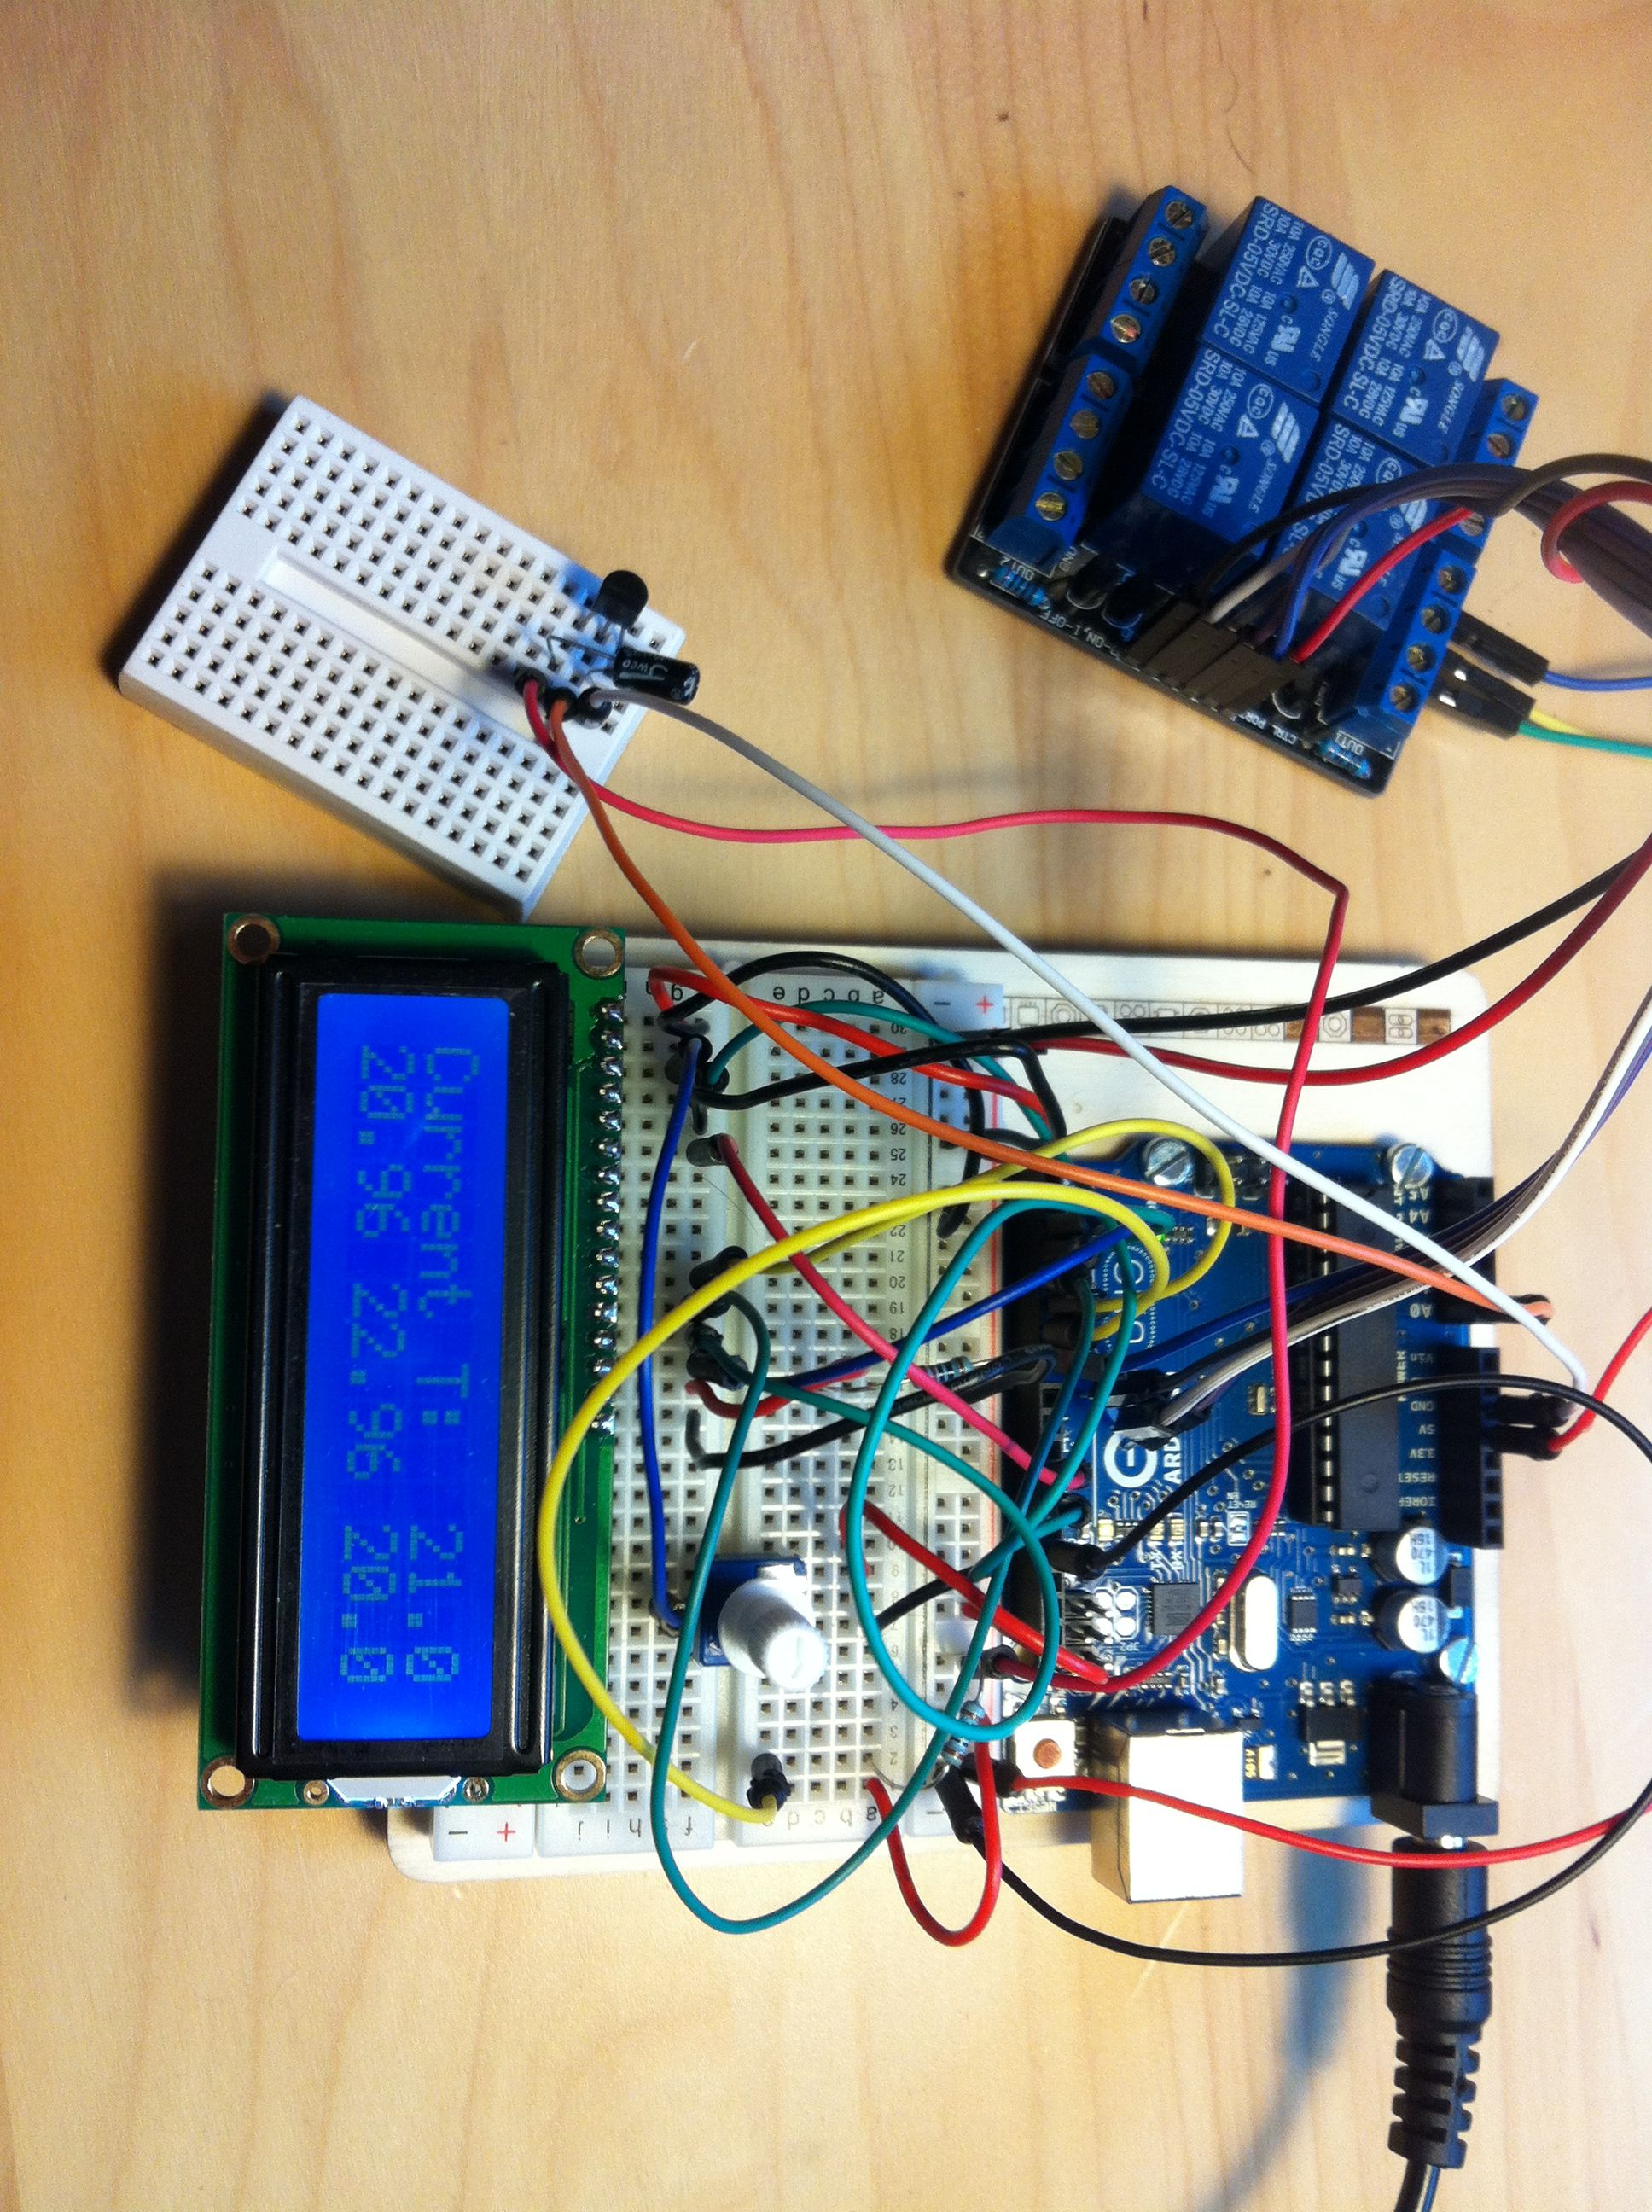 Arduino Lcd Display Temperature Sensor Plus Relay Detector Controller Circuit Electronic Projects A To Control The Fan Code Is Set Turn On At Degrees And Off 23